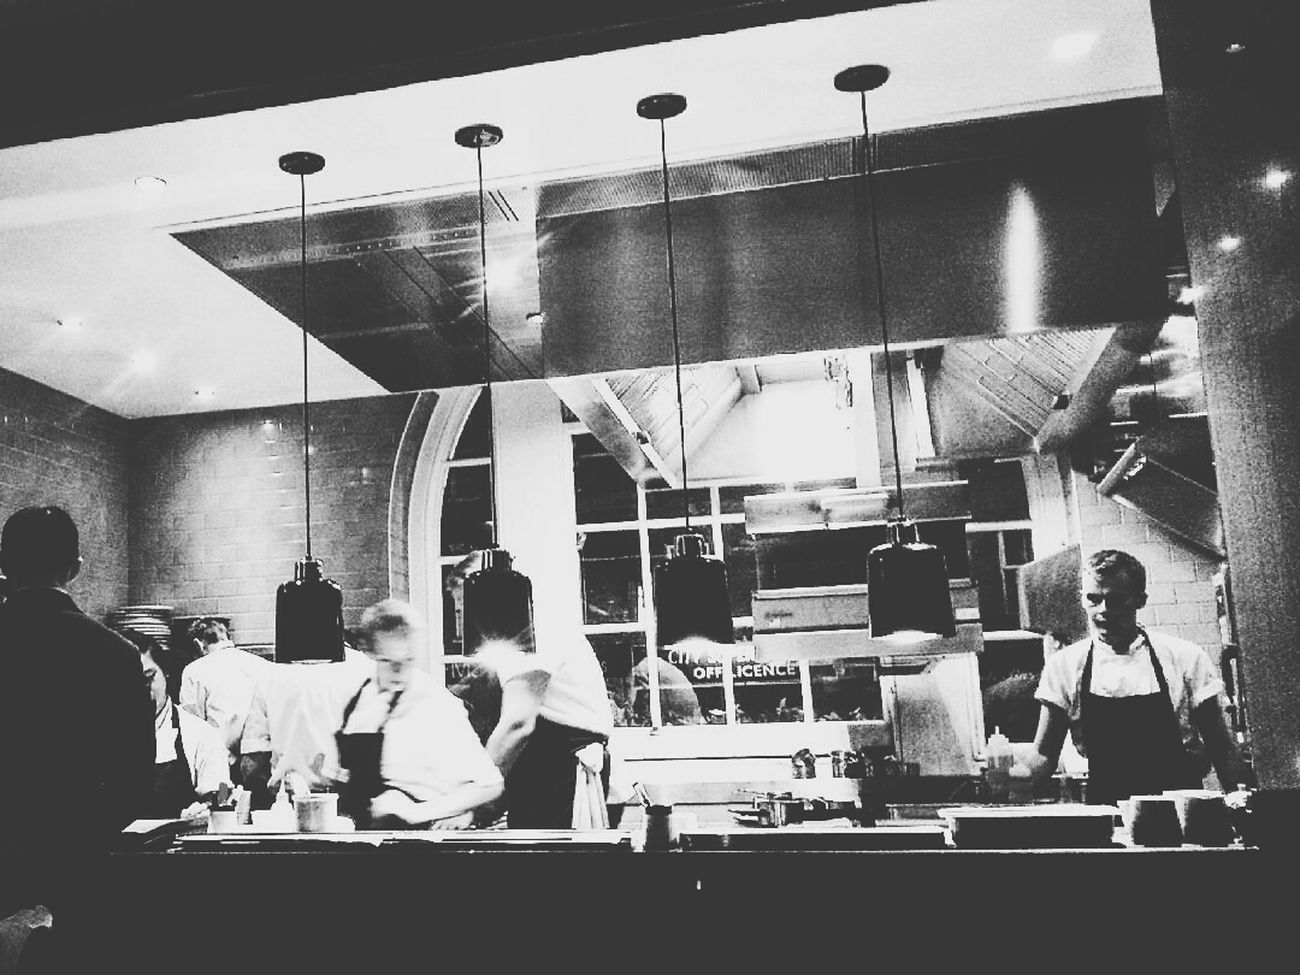 Medium Group Of People Real People People People Watching CaptureTheMoment London Restaurant Restaurant Kitchen Restaurant Scene Chefsatwork Chefs Chefs In Kitchen City Life Urban Culture Culinary Culture Foodphotography Food Fresh On Eyeem